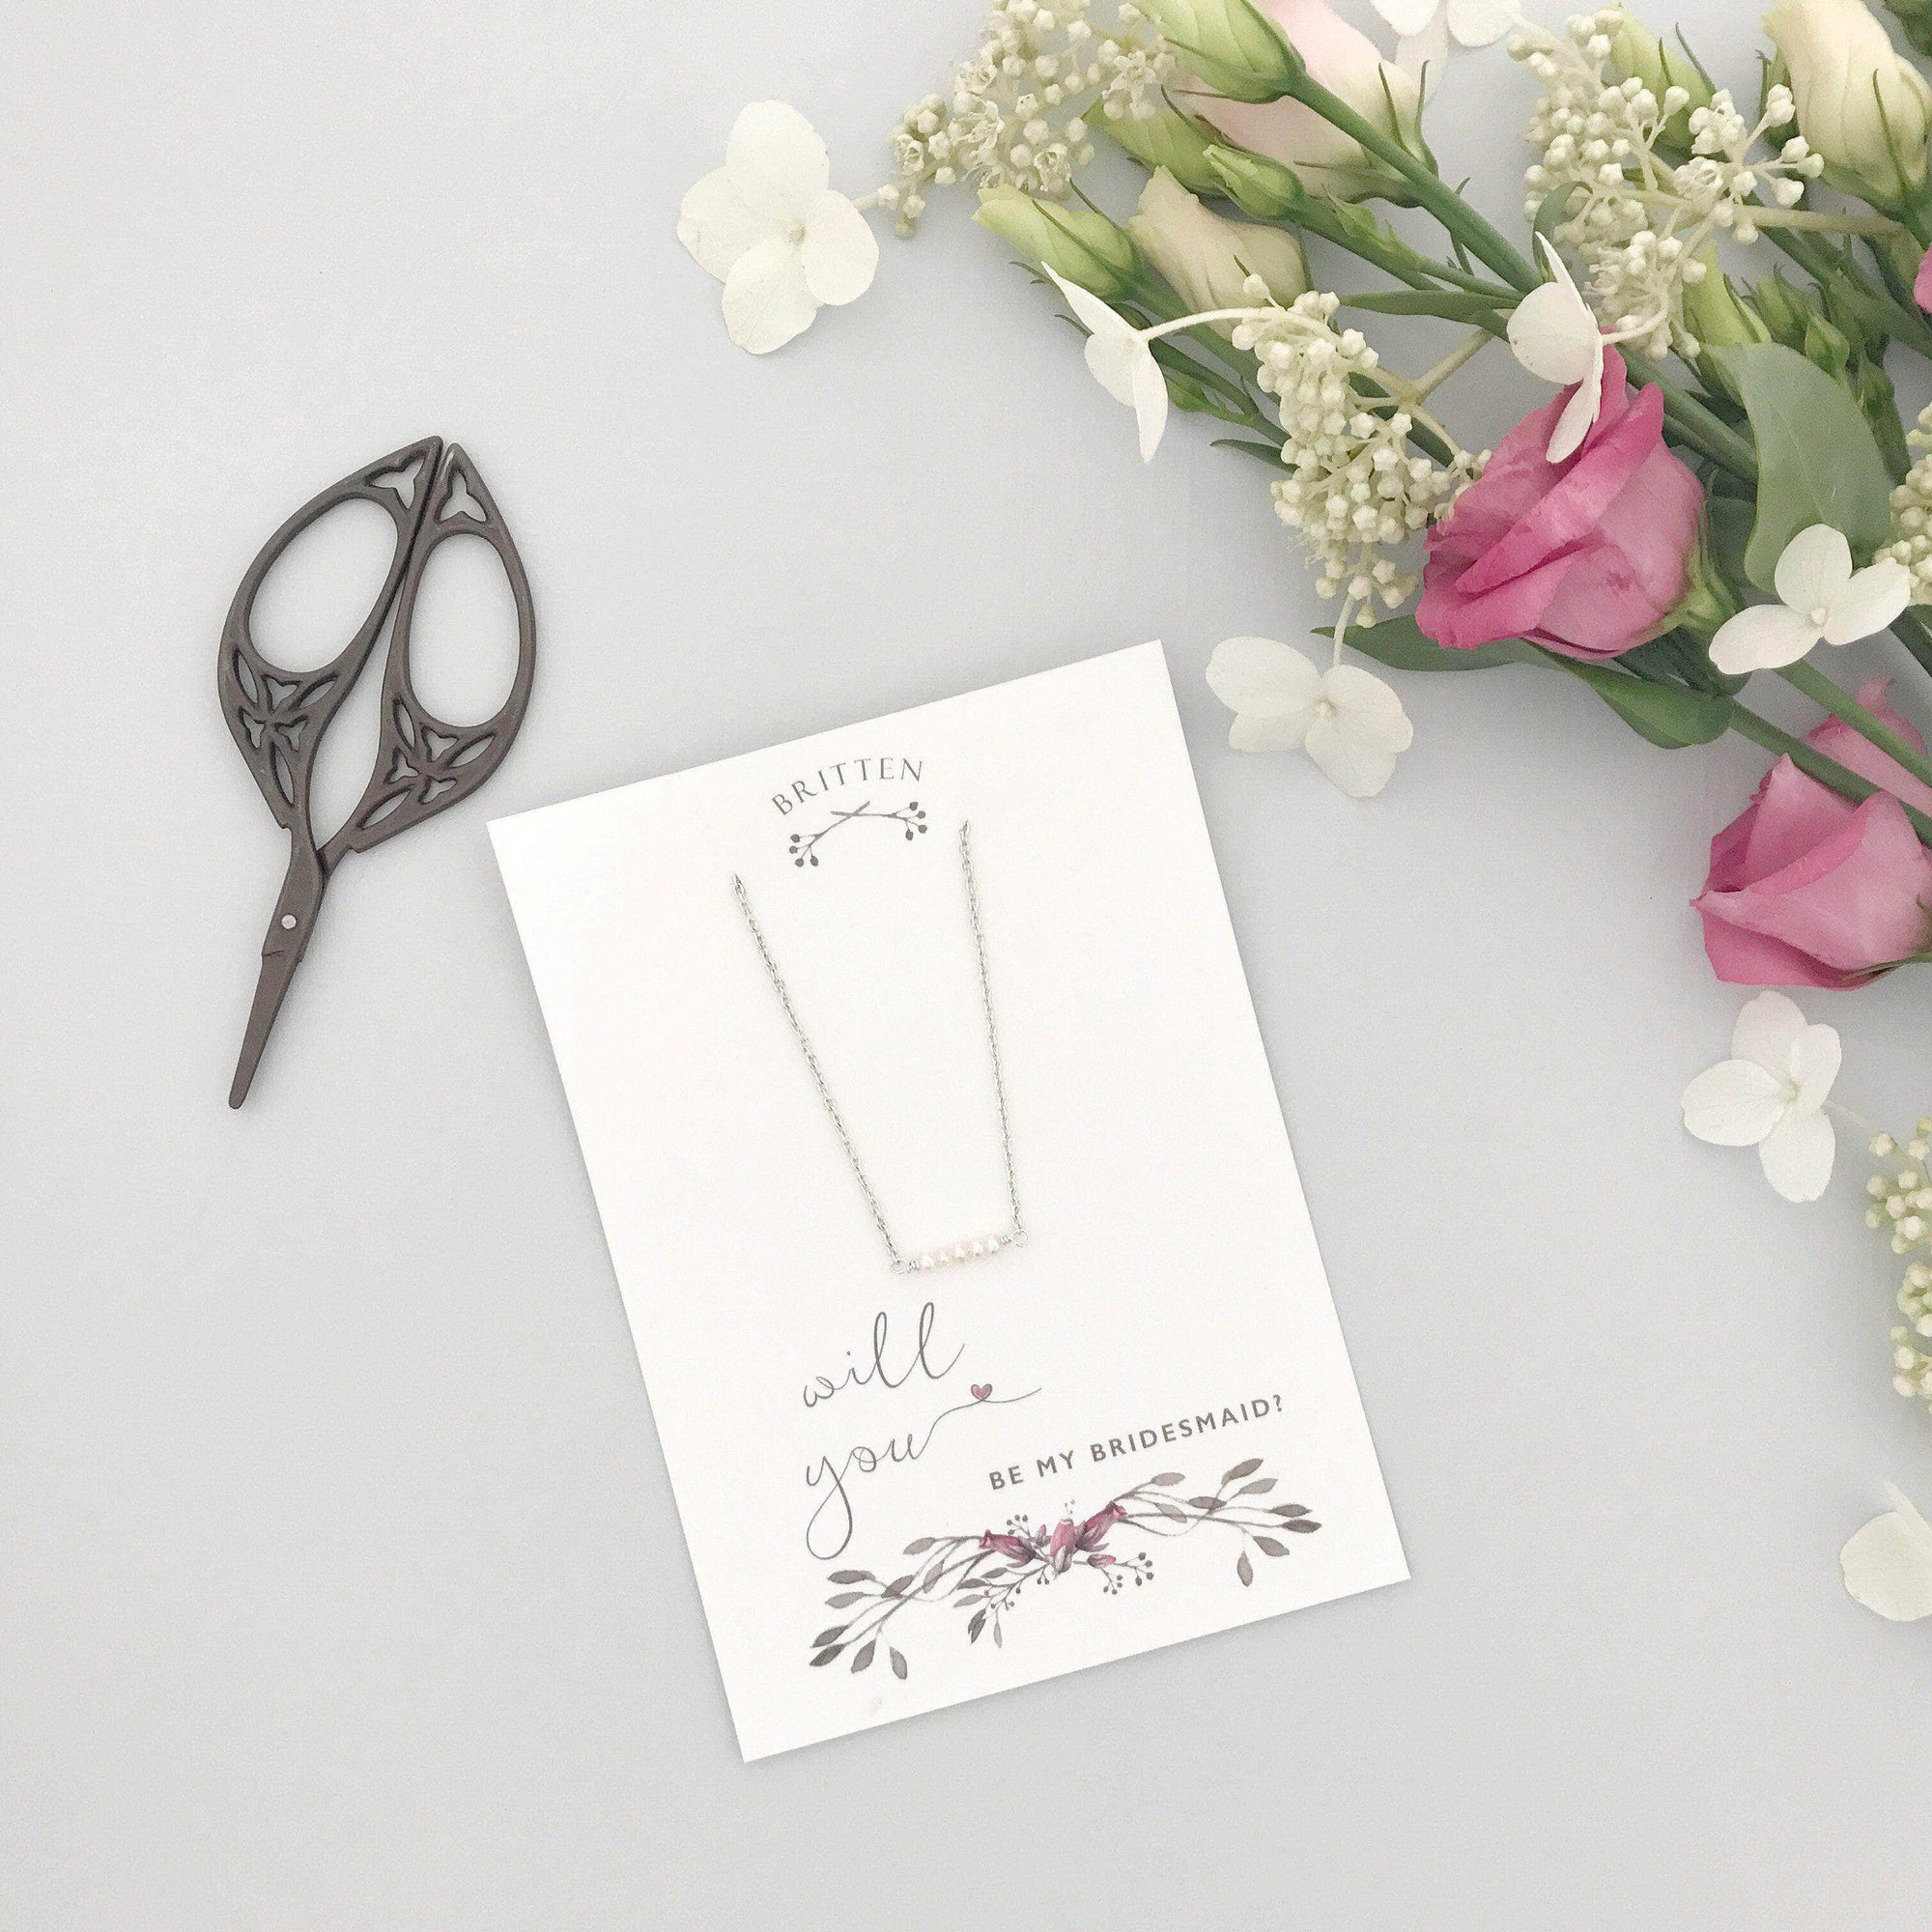 Bridesmaid Gift Silver Will you be my bridesmaid gift necklace - 'Freya' in silver